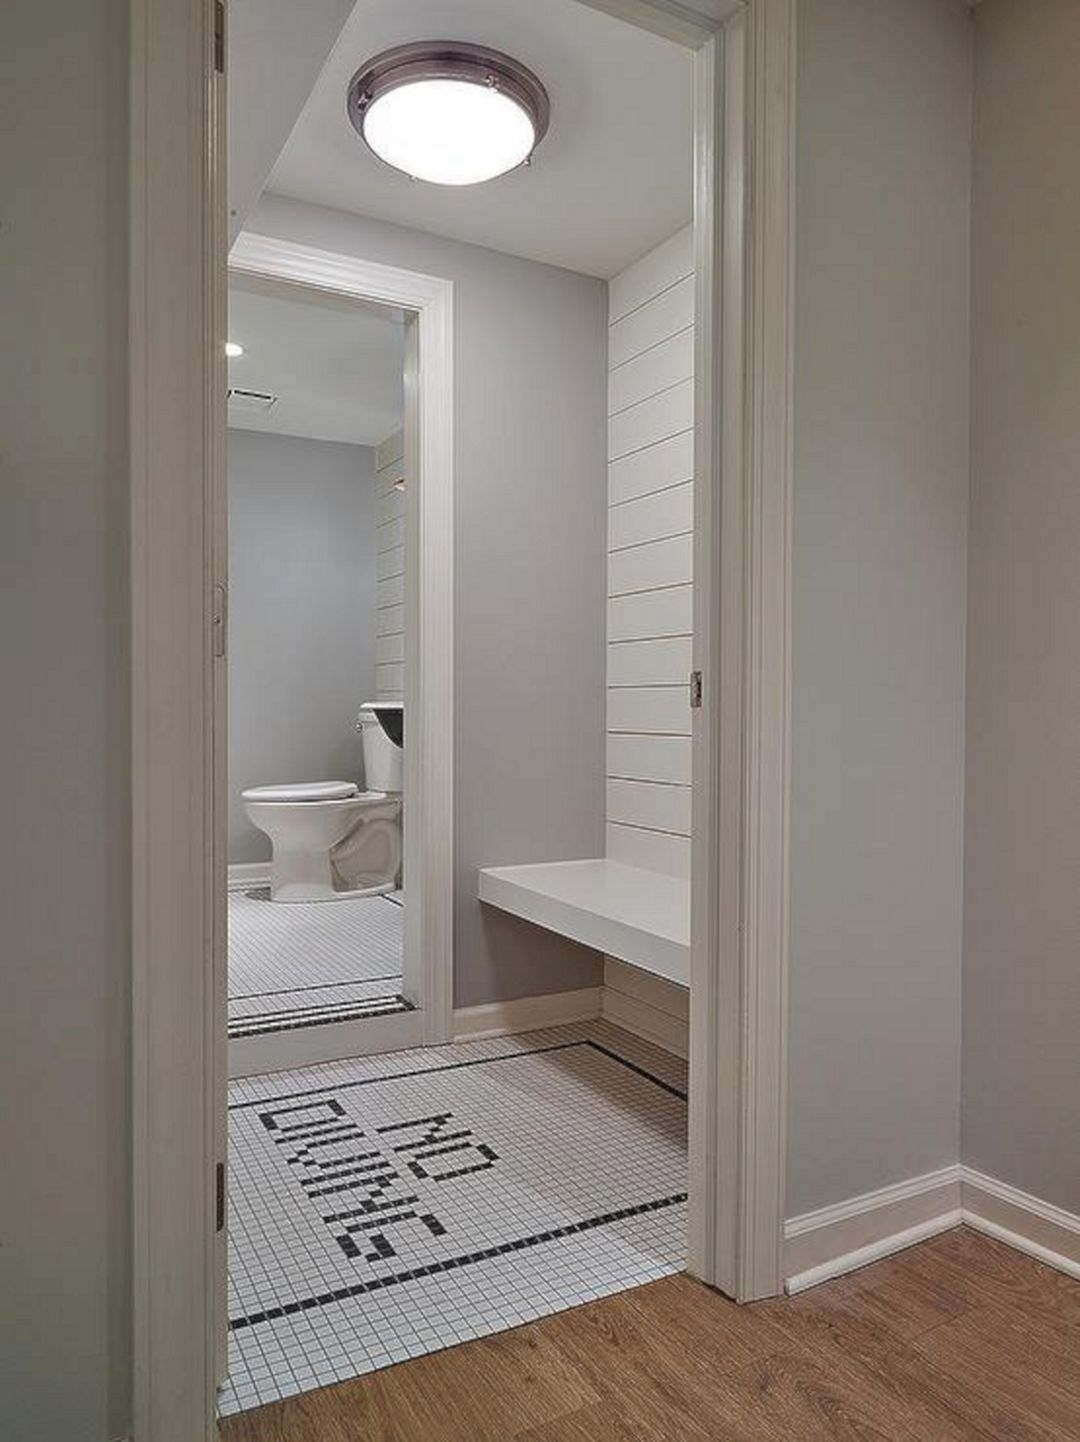 20 Marvelous Bathroom Tile With Shiplap Walls Design Pool House